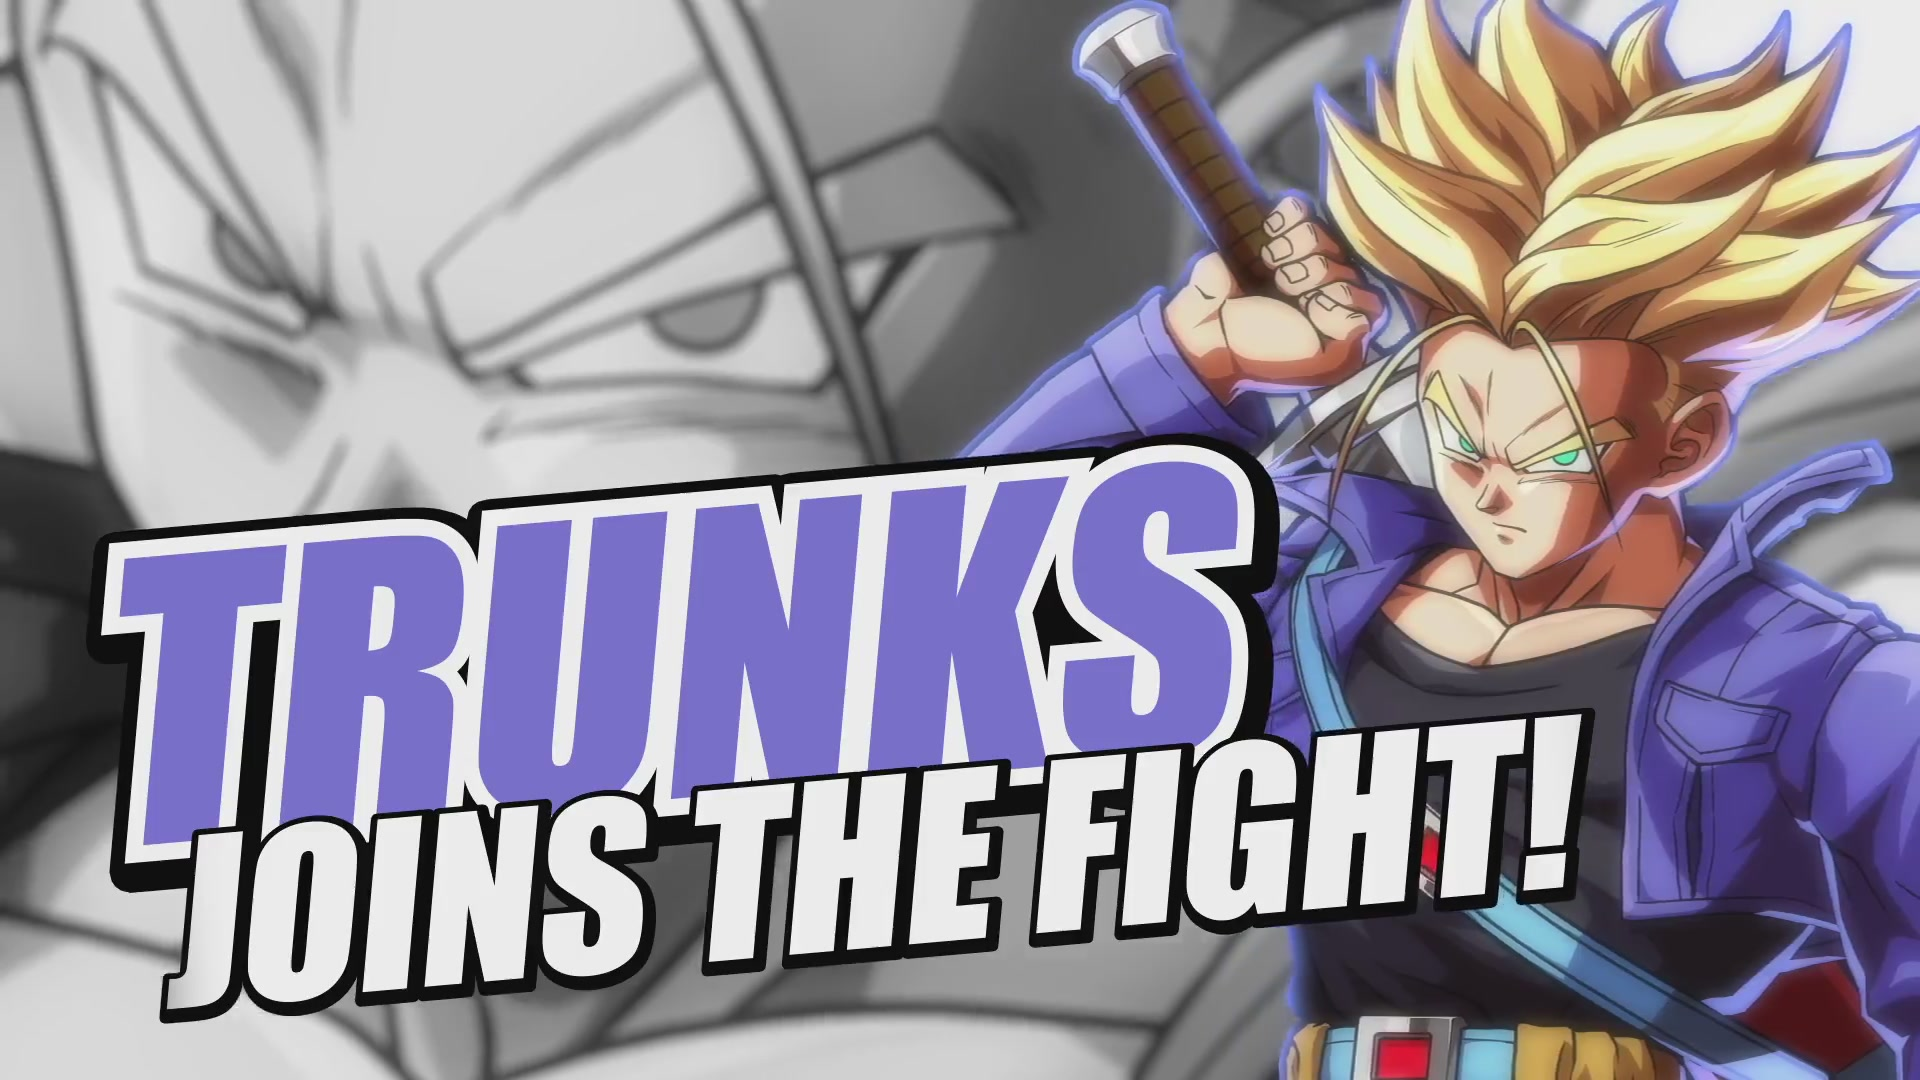 Trunks in Dragon Ball FighterZ 3 out of 12 image gallery